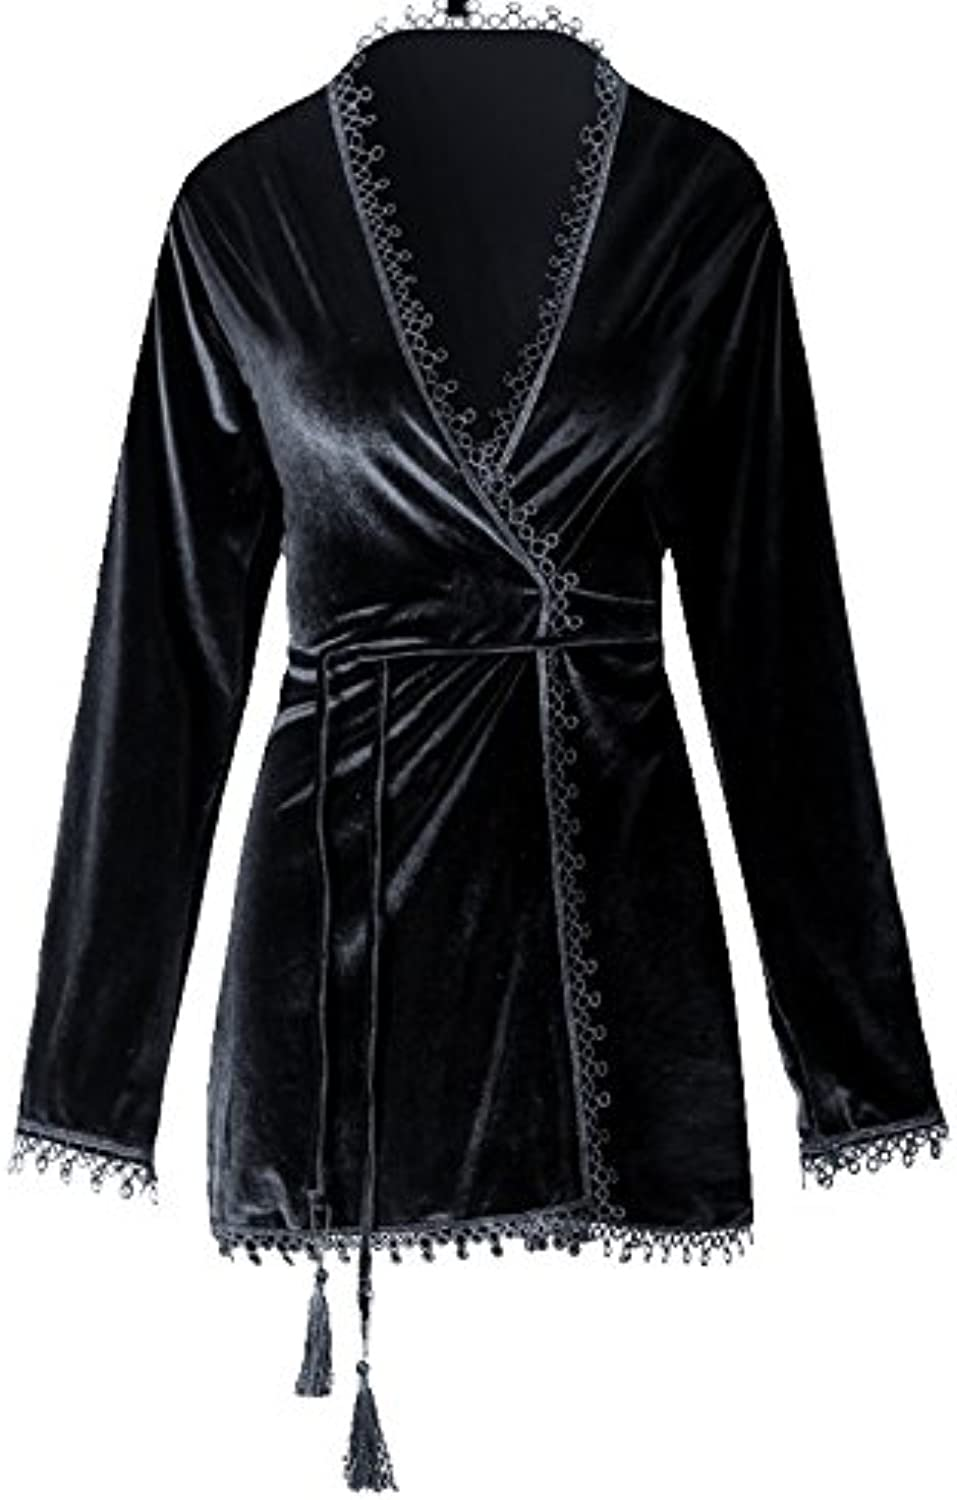 GJM Shop Female Black Autumn and Winter Polyester Fiber Long Sleeve Short Paragraph Sexy Pajamas Nightgown Bathrobes (Size   L)